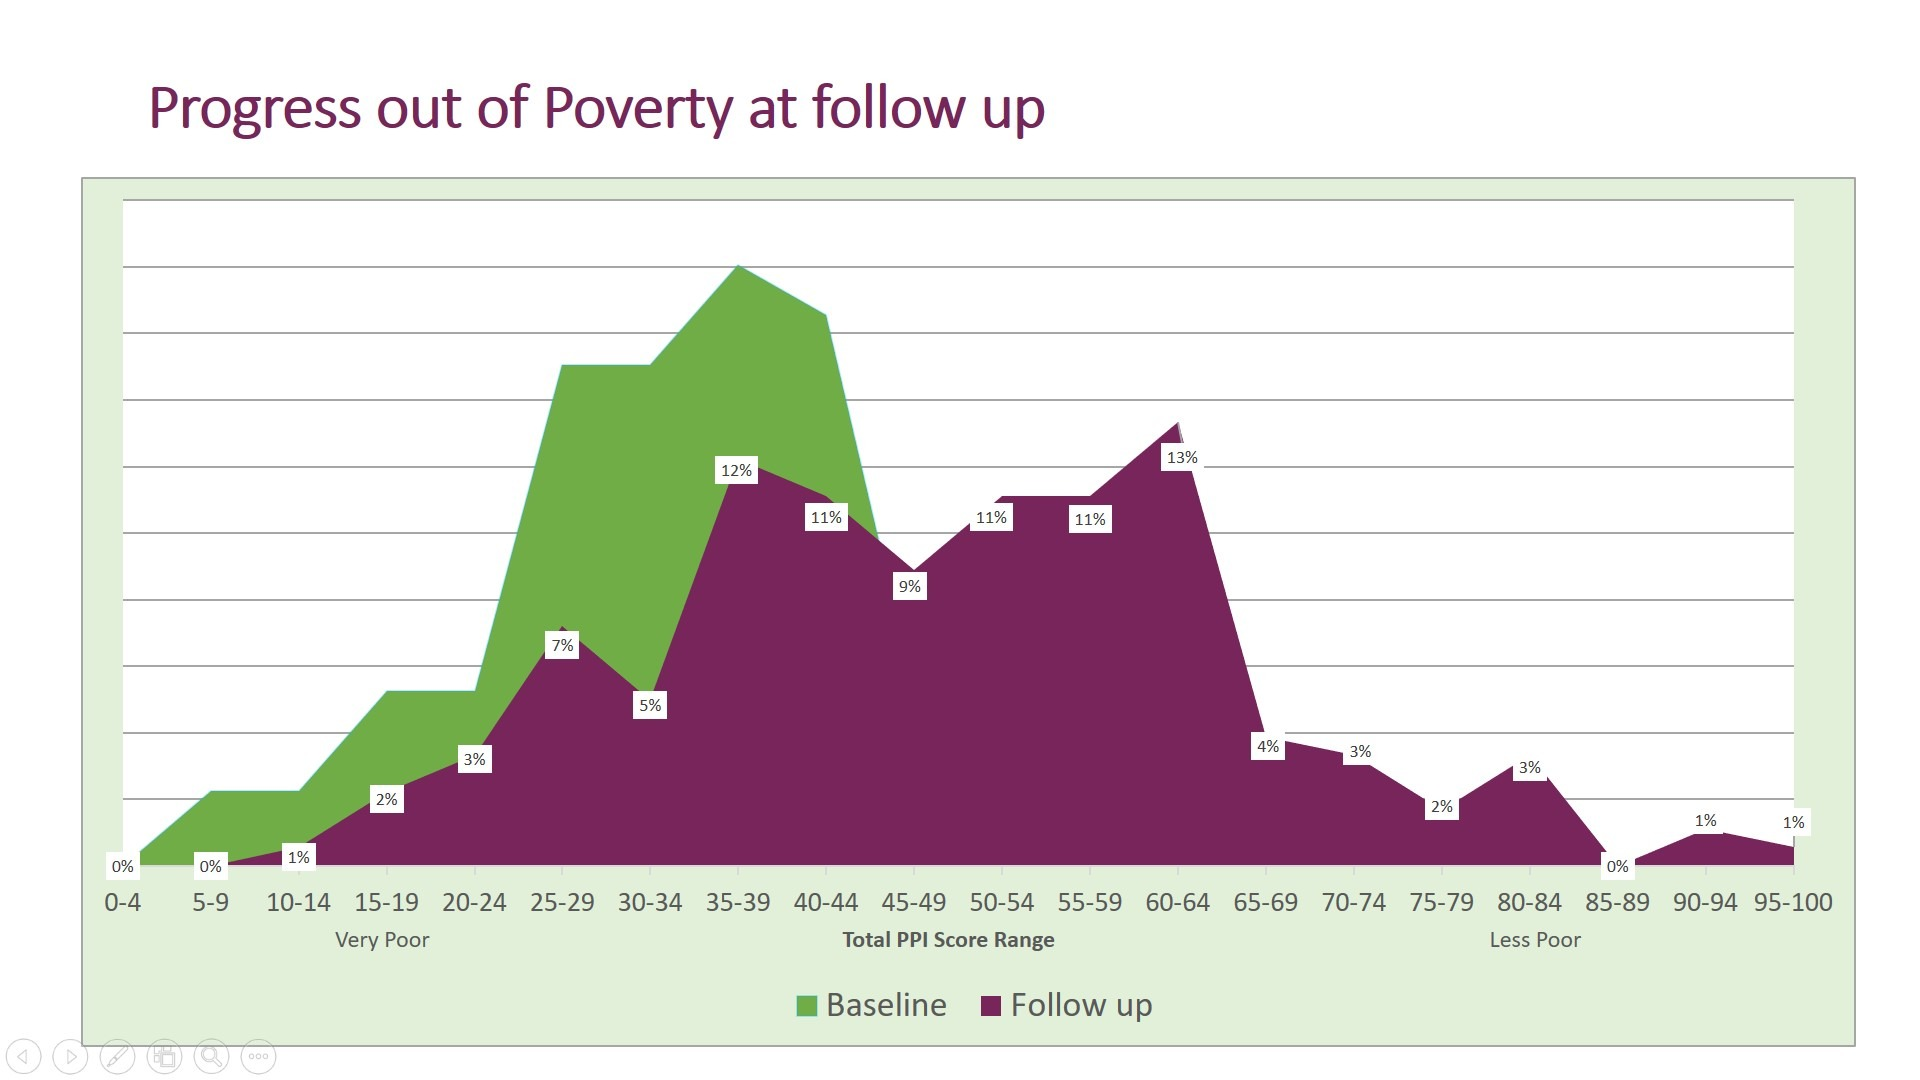 Graph showing Progress out of Poverty at follow up